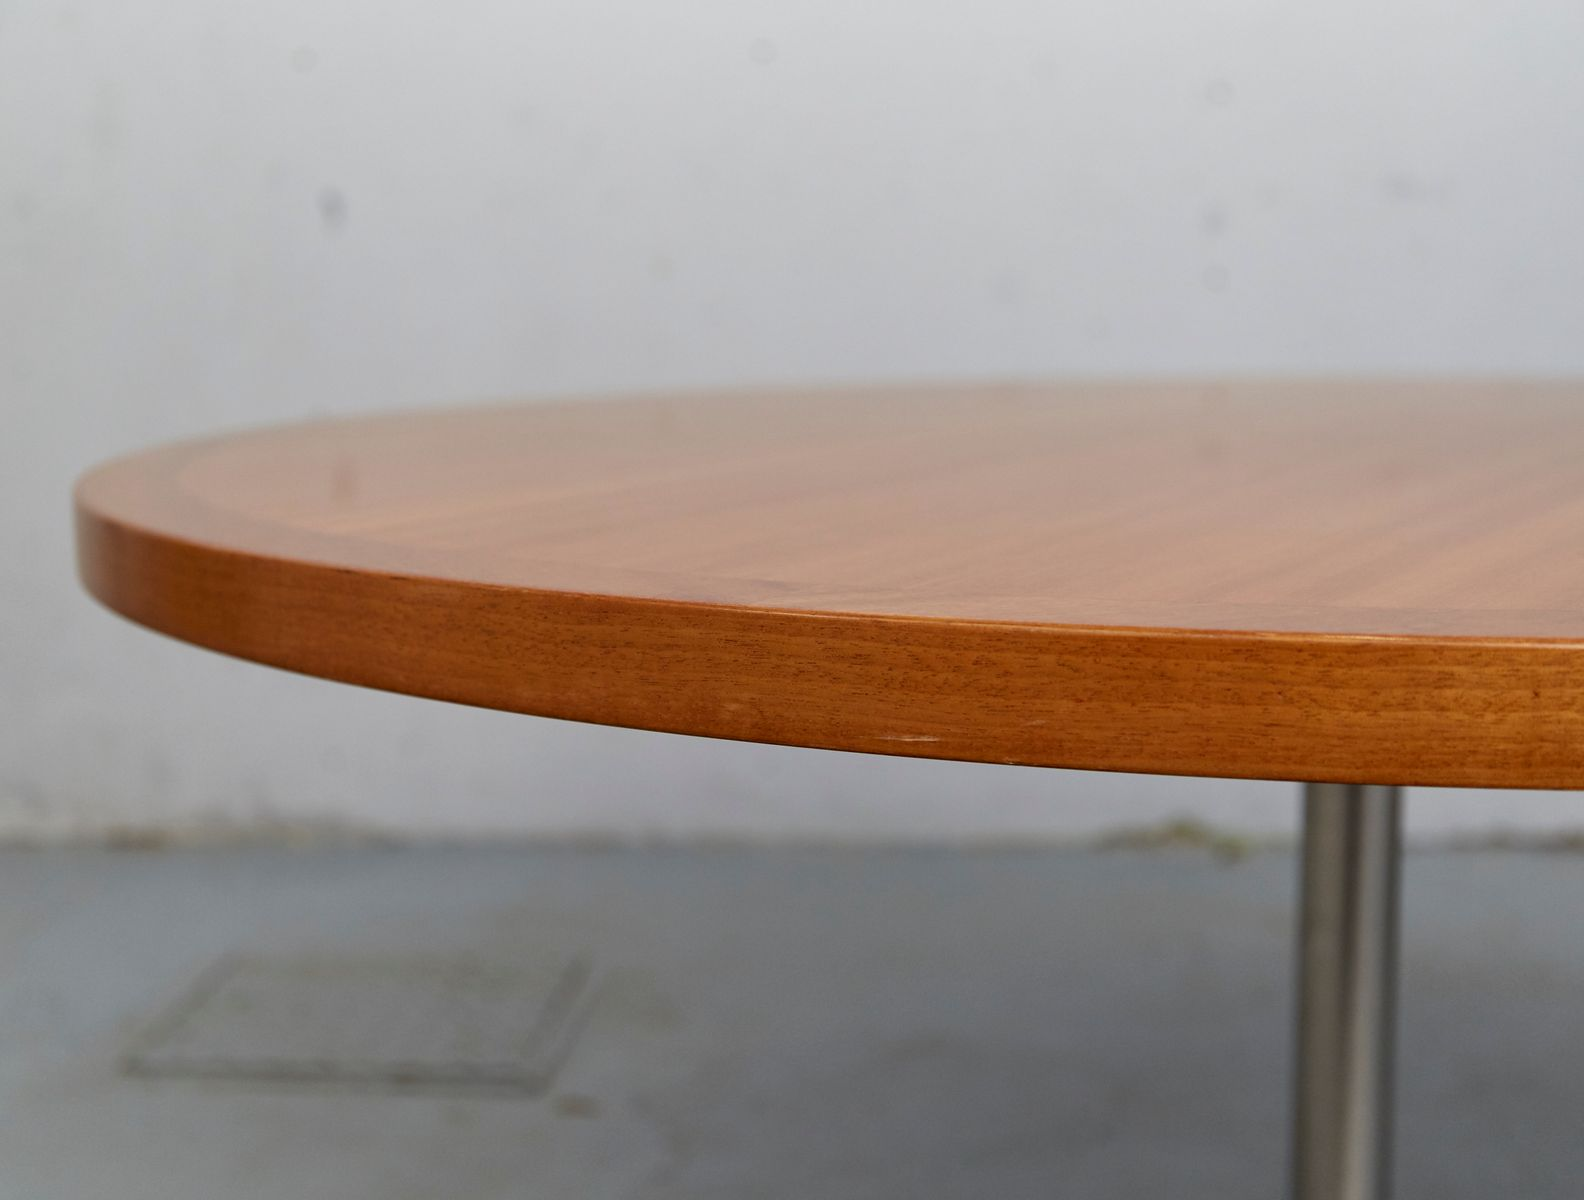 Vintage Rotatable Wood And Aluminum Coffee Table By Preben Fabricius For Walter Knoll 1960s For